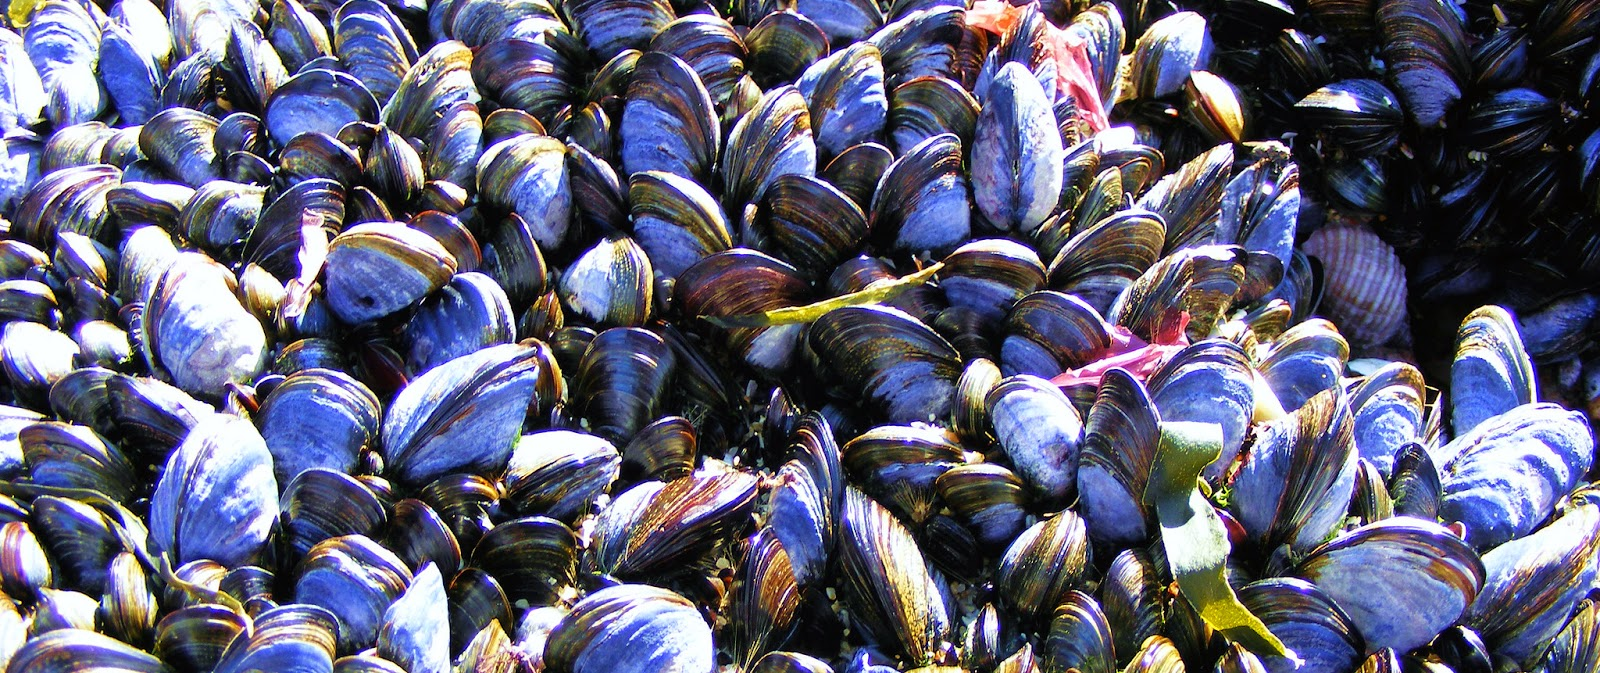 How Do Mussels ...